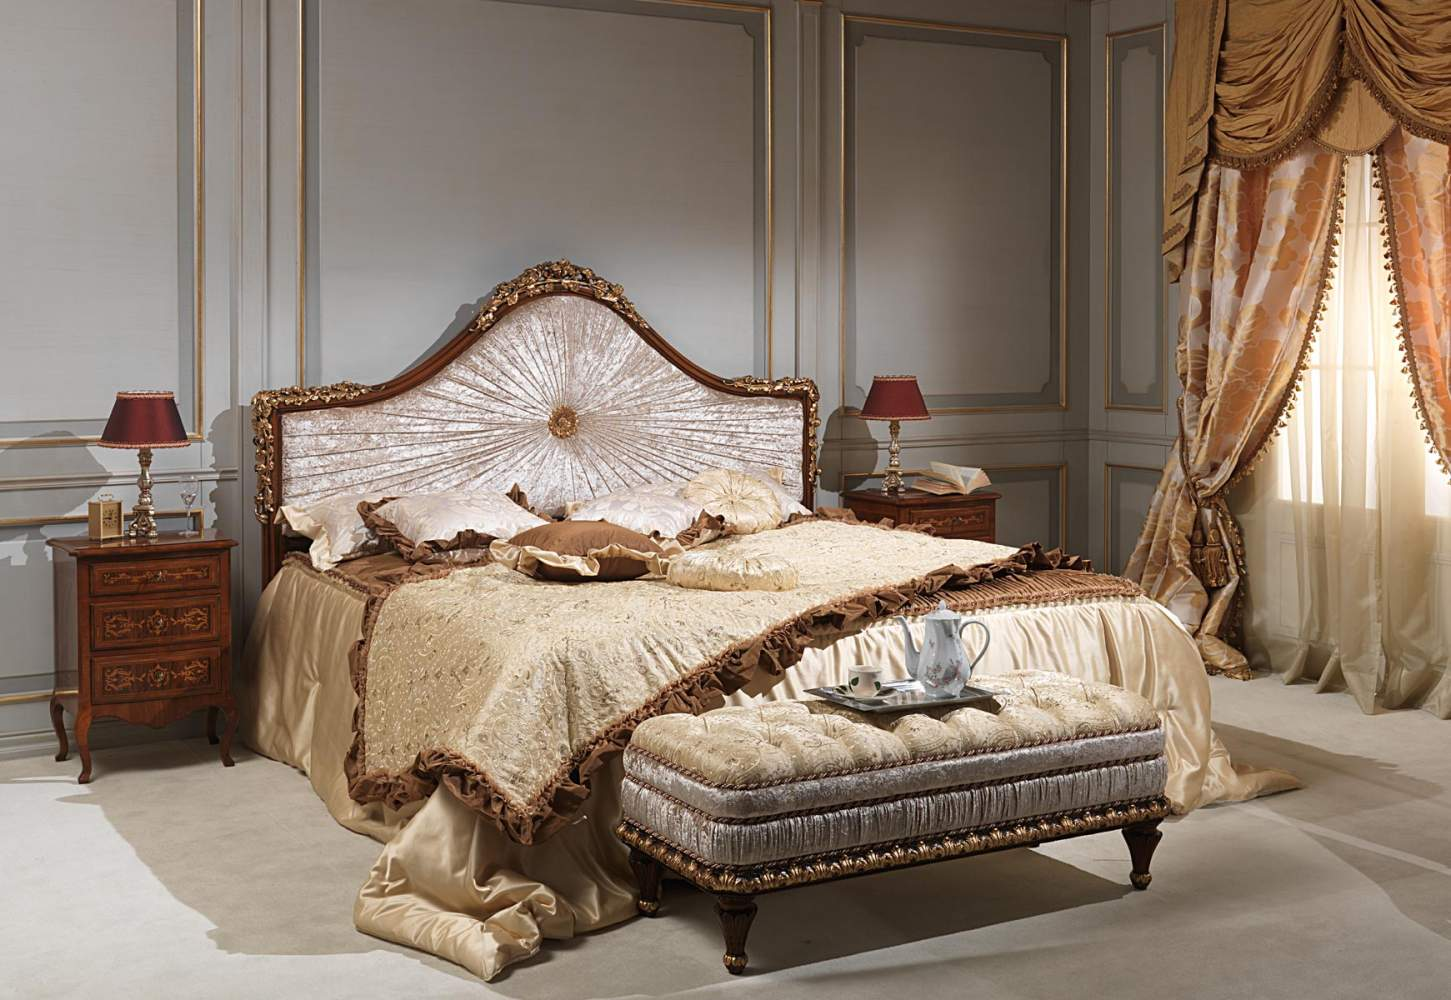 Classic louvre bedroom, bed, bench and chest of drawers